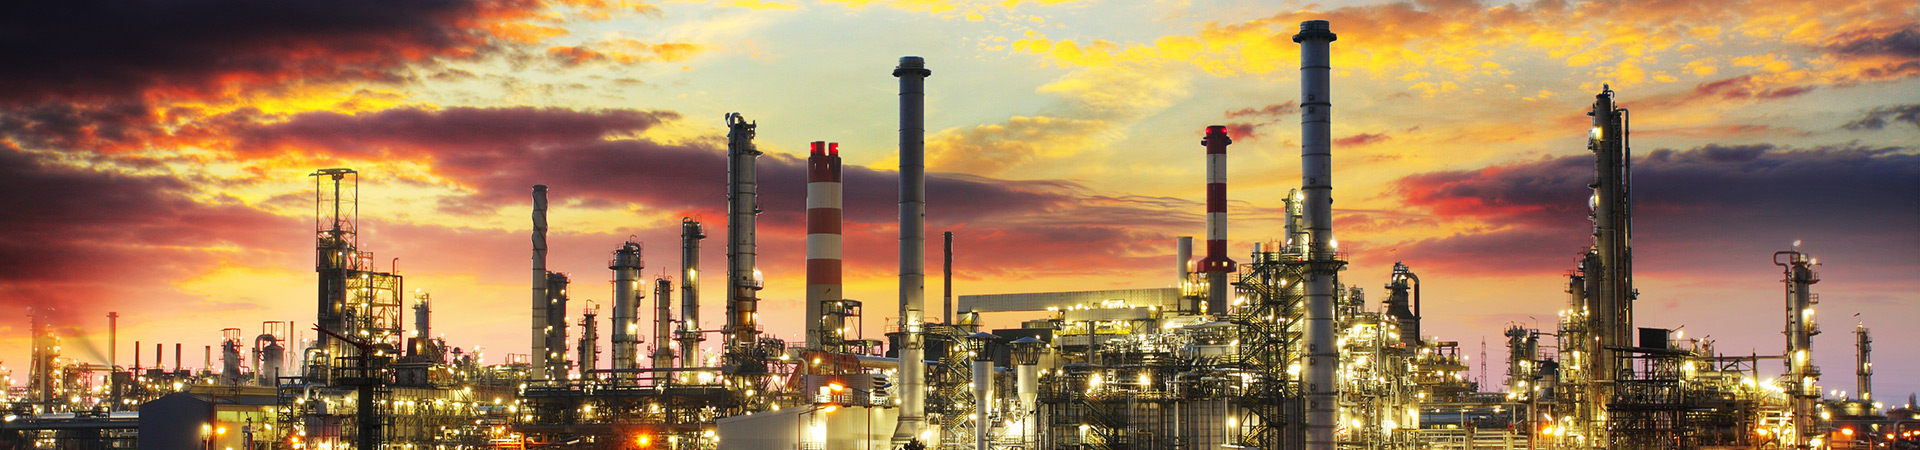 Industrial Chemical Safety